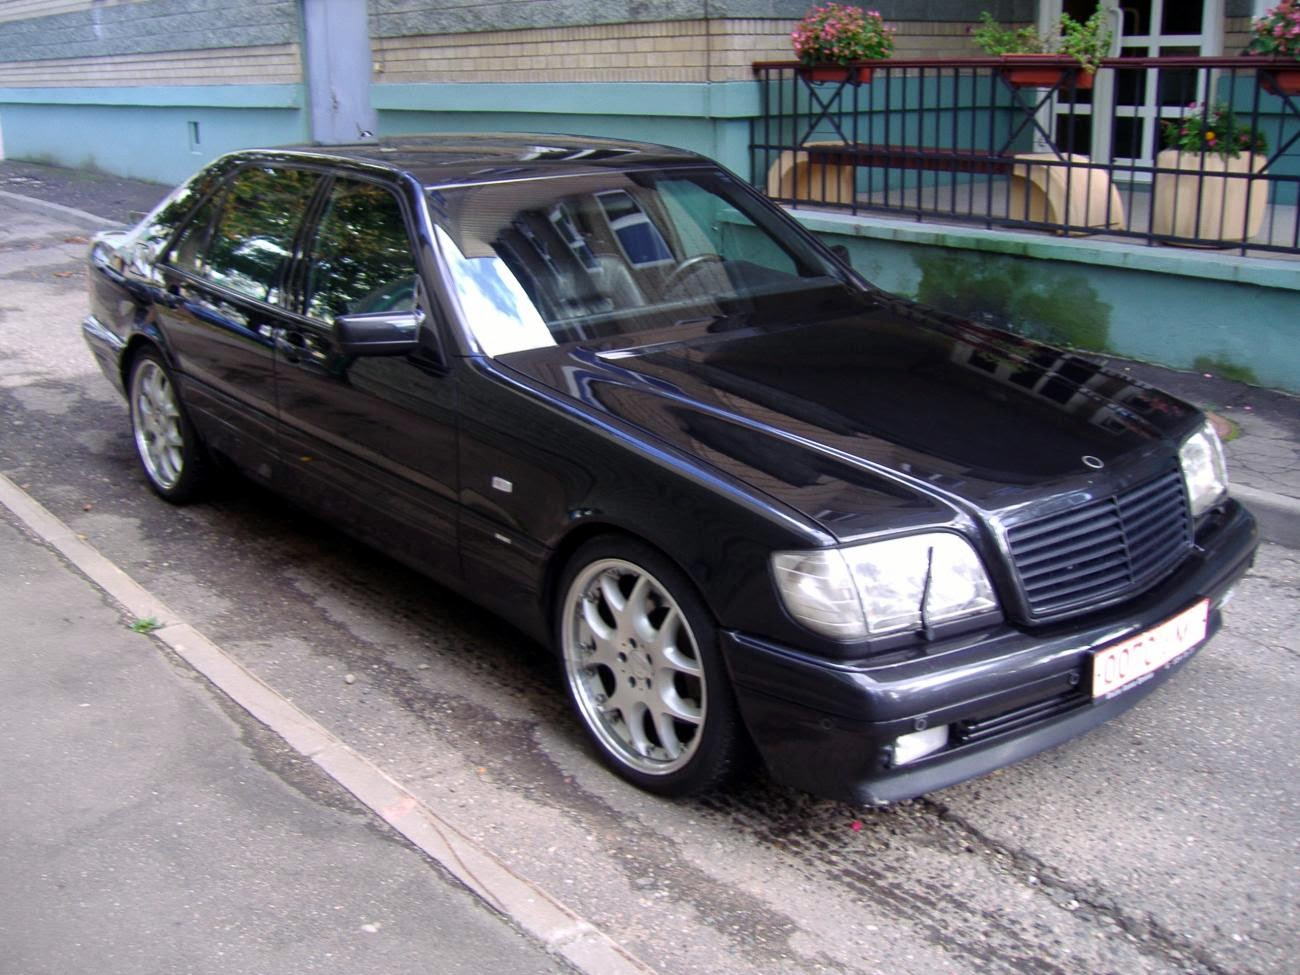 Brabus s 7 3 w140 v12 benztuning for Mercedes benz w140